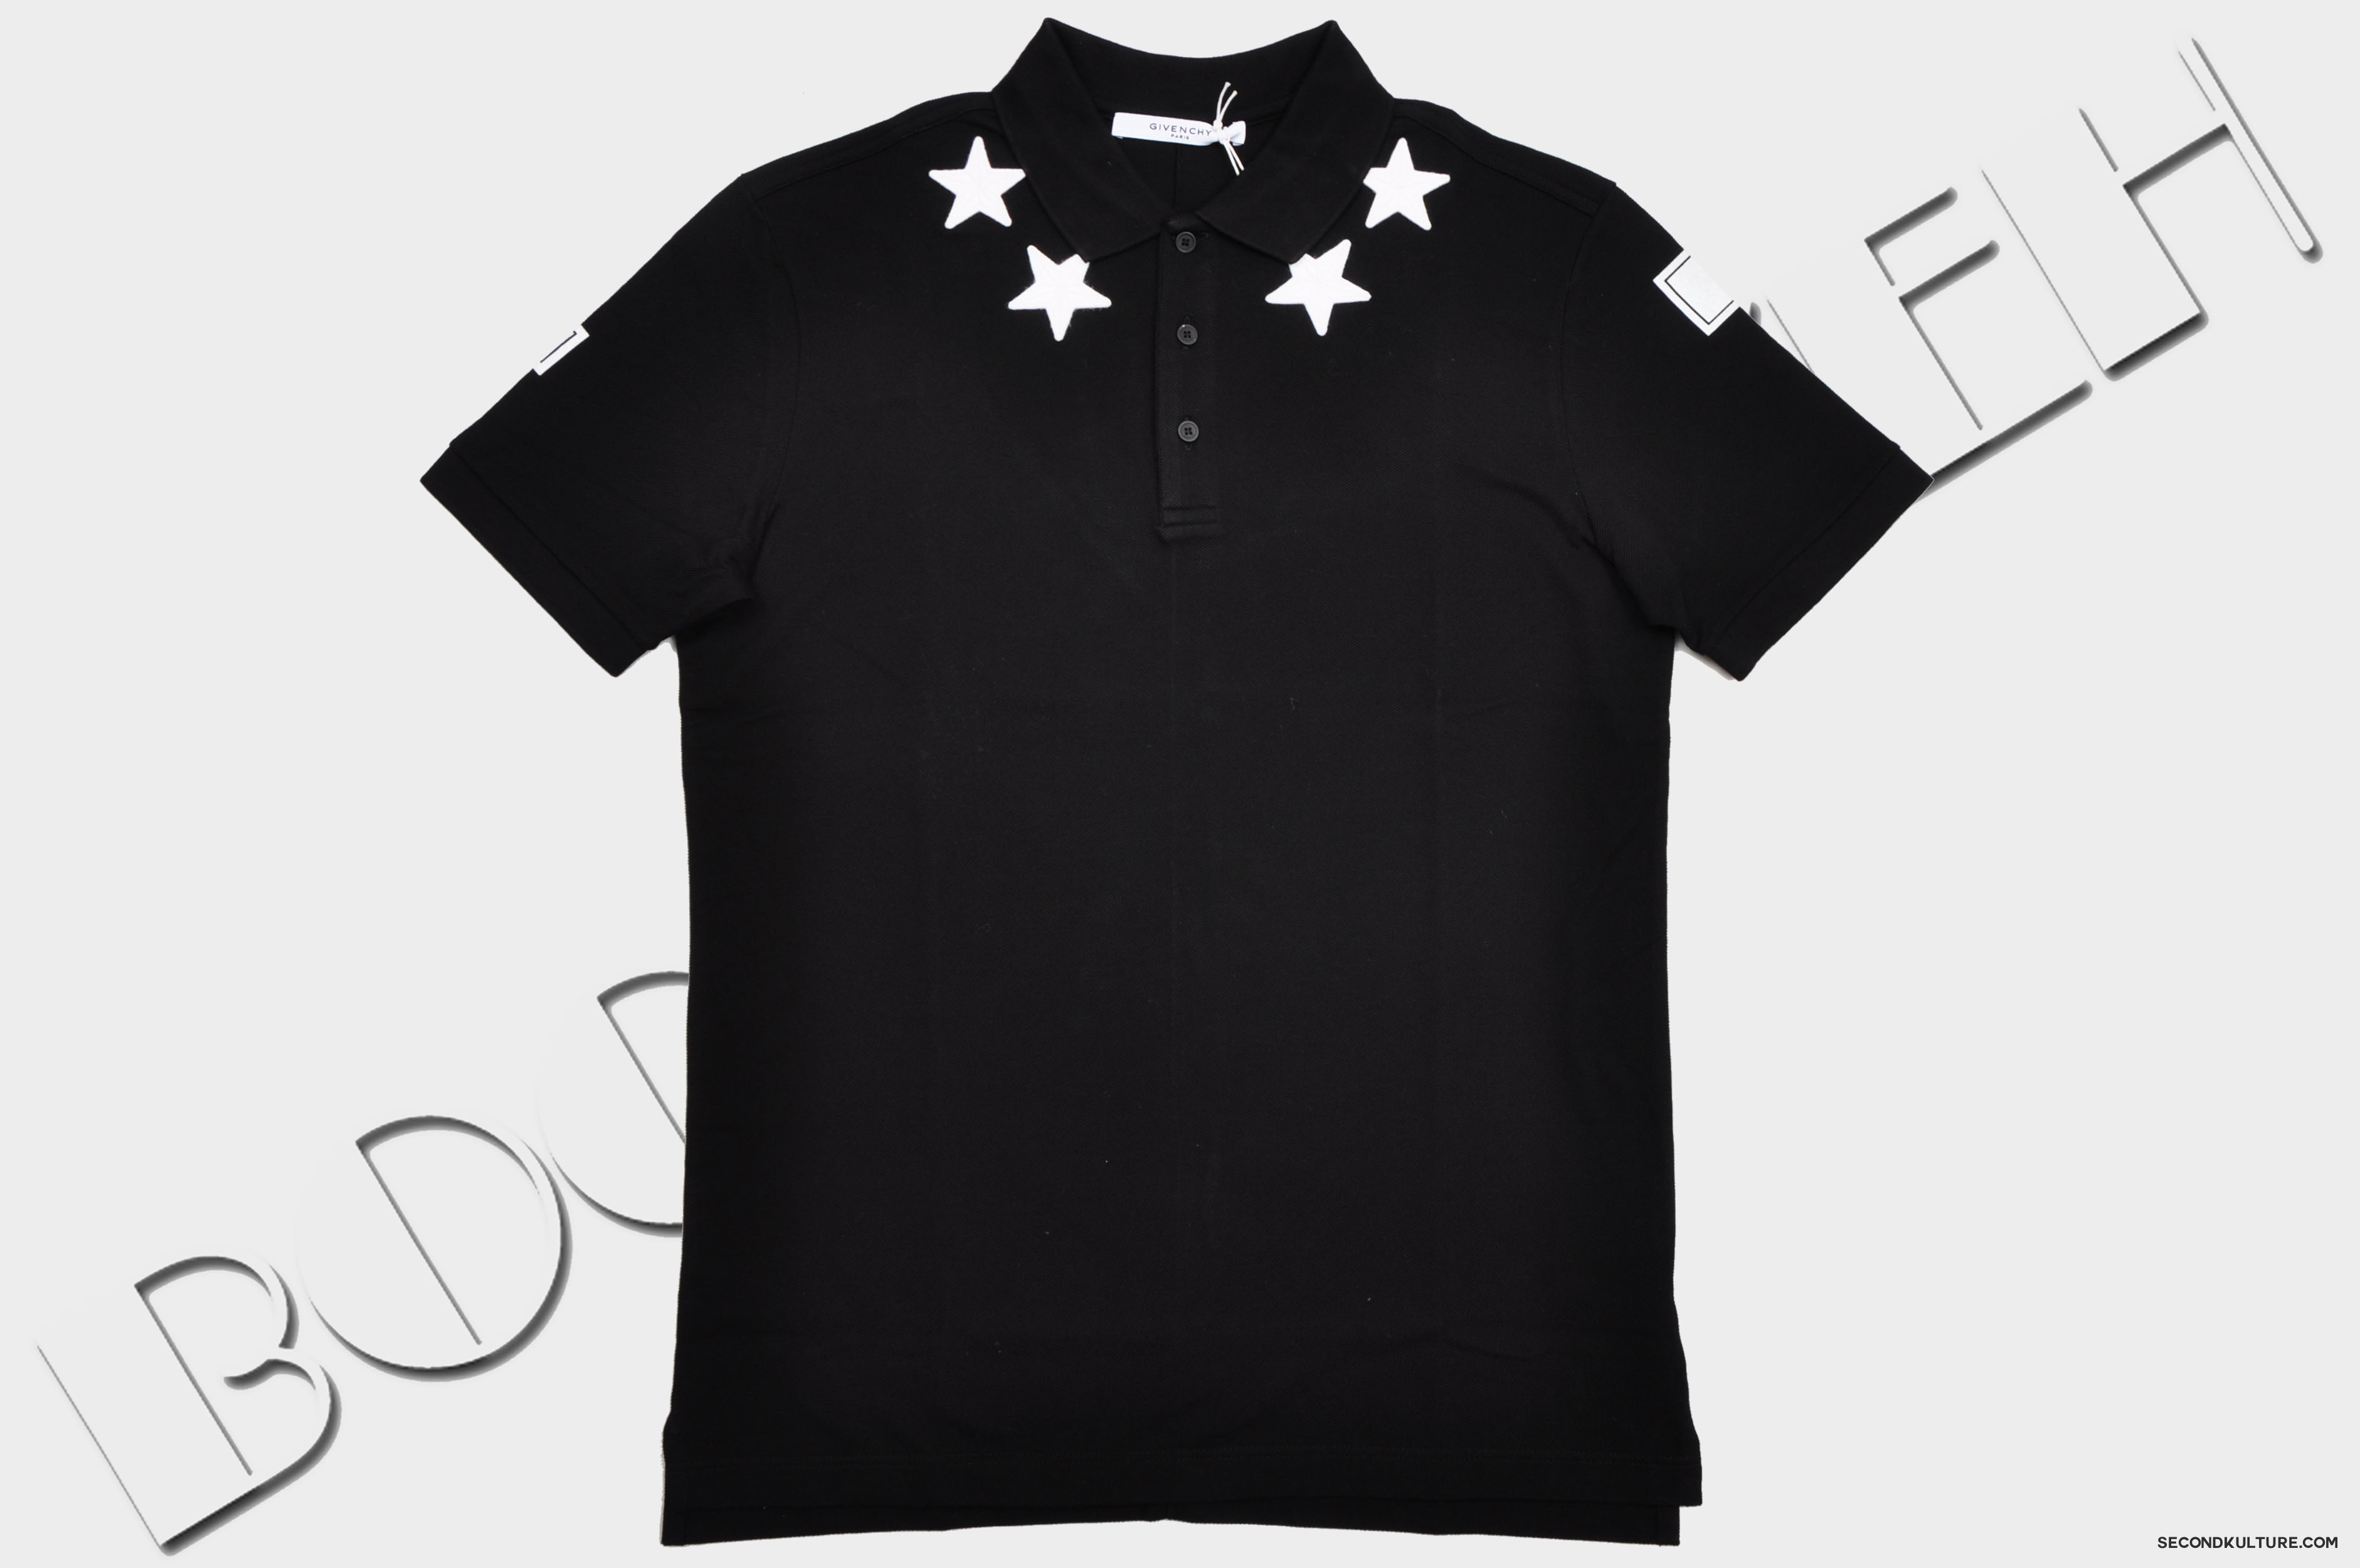 Givenchy-Black-Stars-Neckline-Embroidery-Cuban-Fit-Polo-Shirt-Pre-Fall-2015-15F7102701